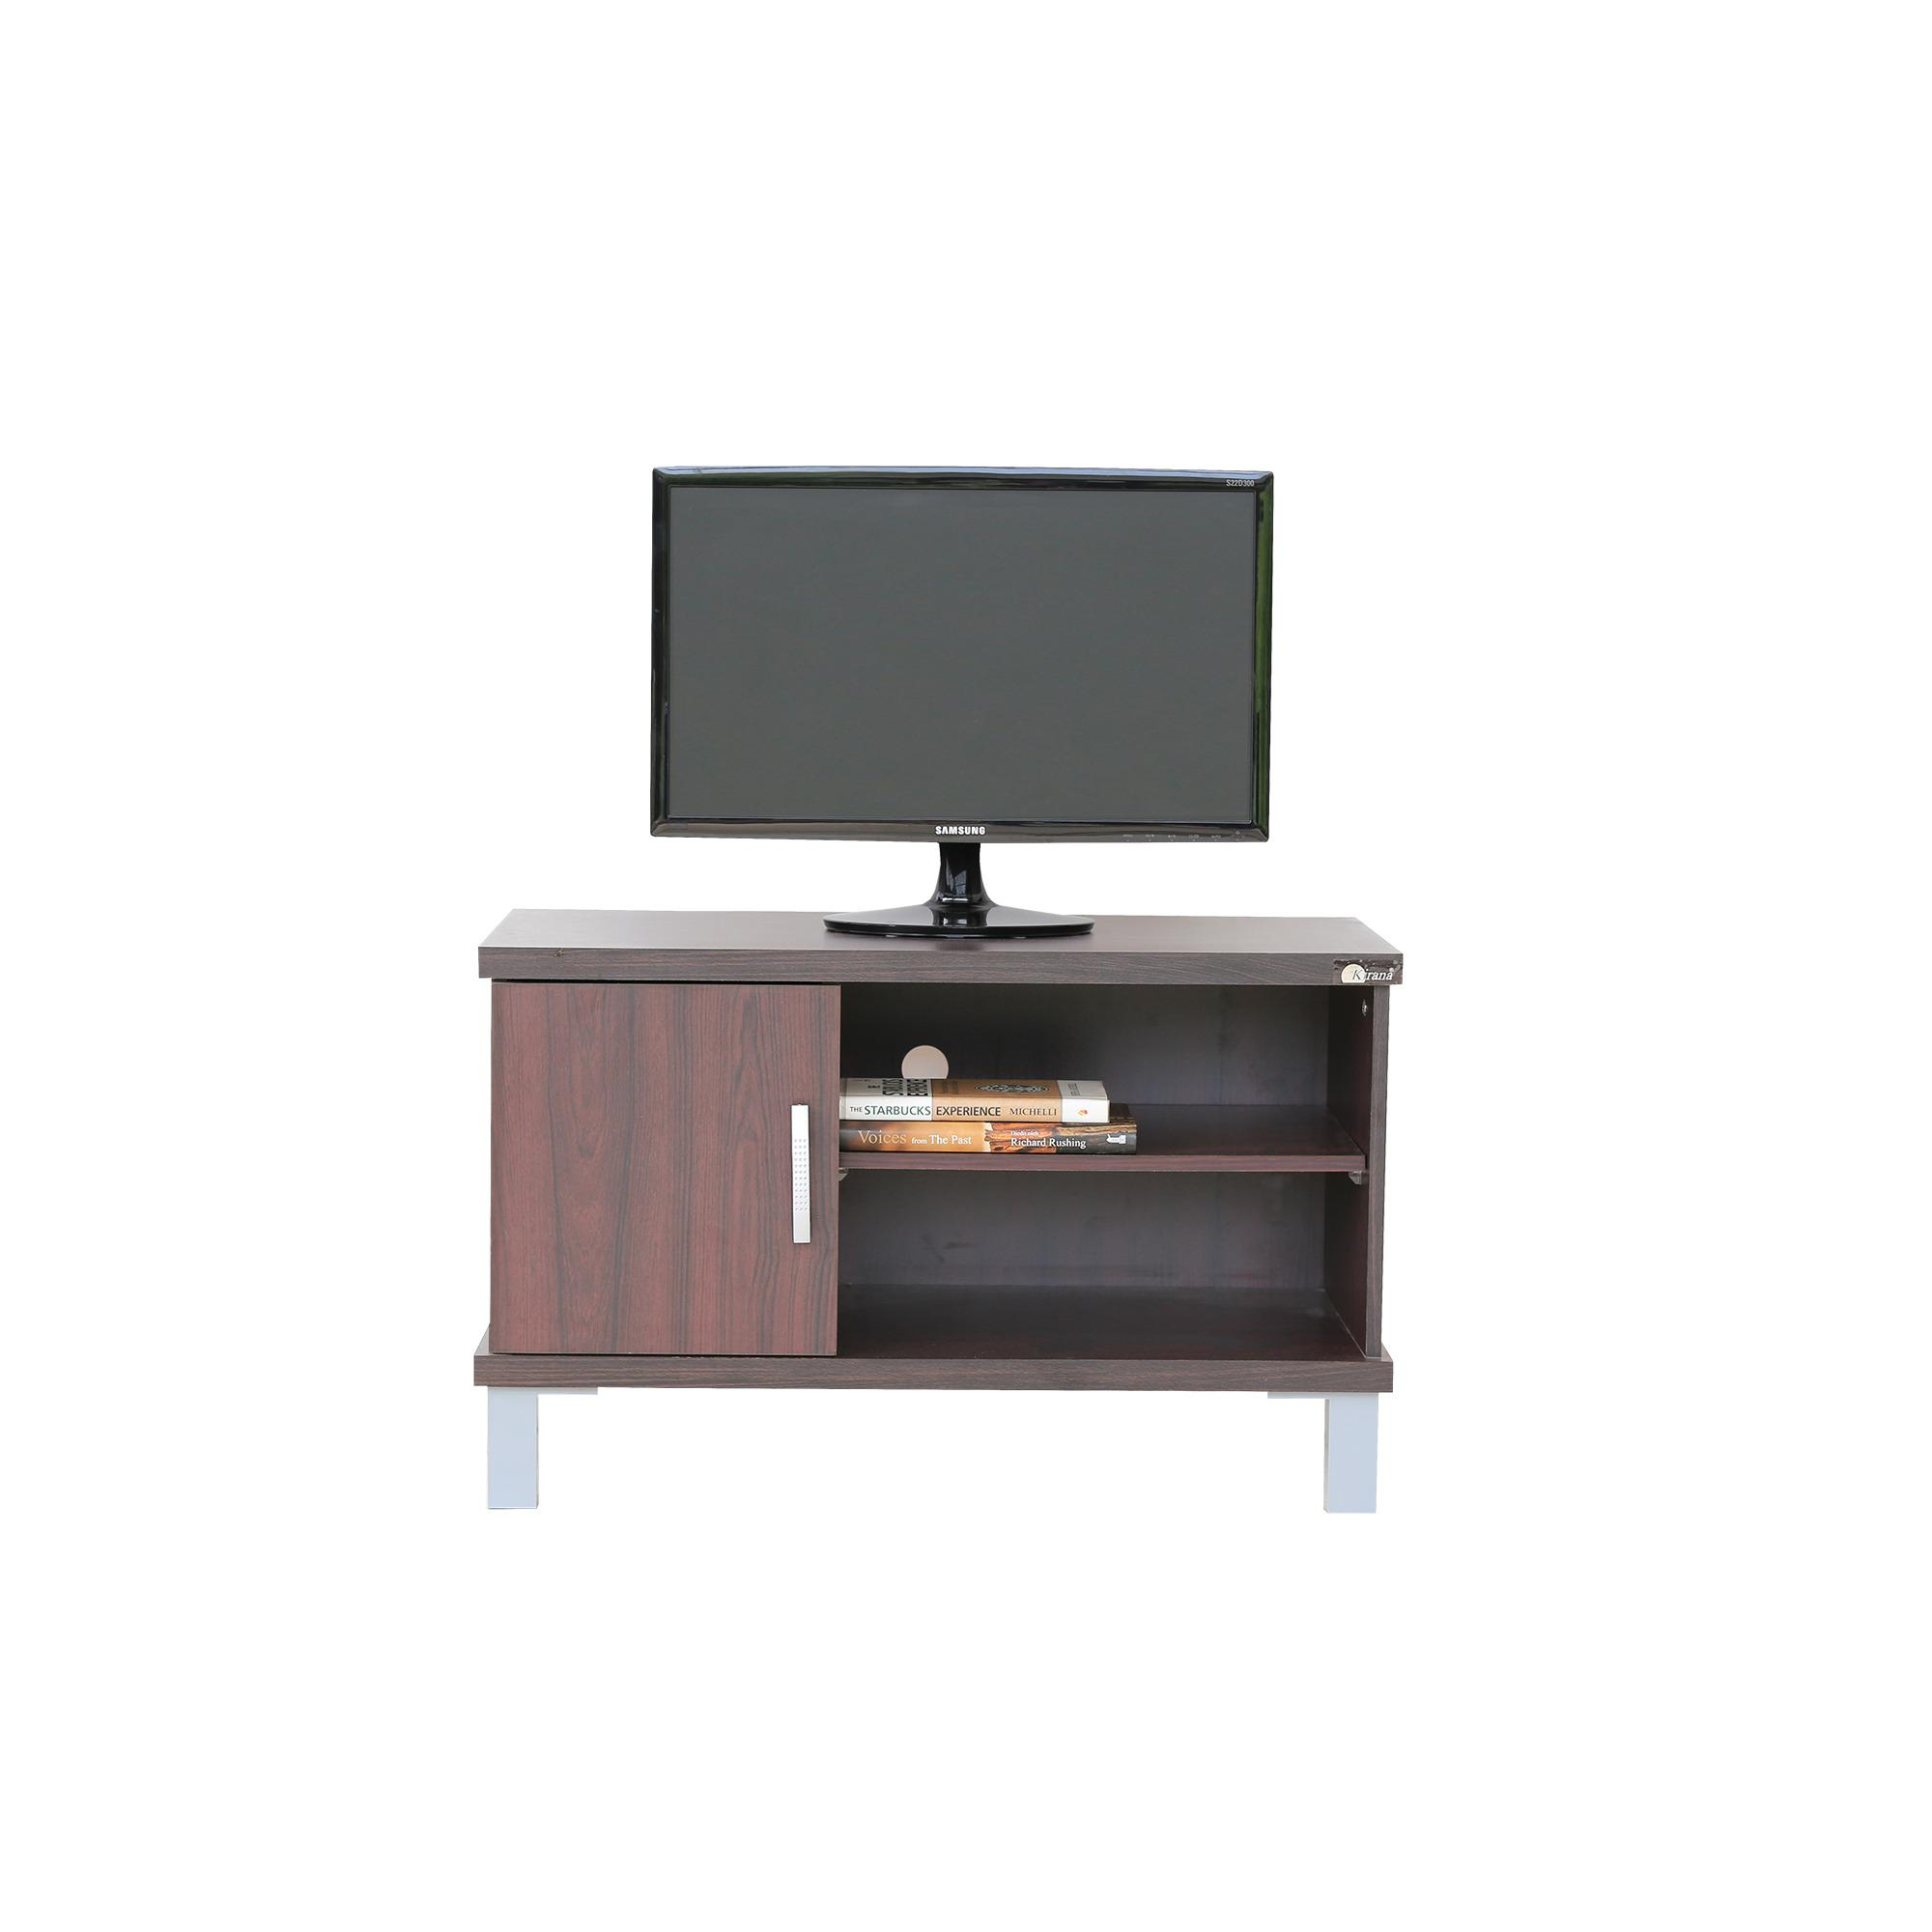 Kirana Rak TV / Meja TV / Audio BF 883 DM - Dark Mahogany